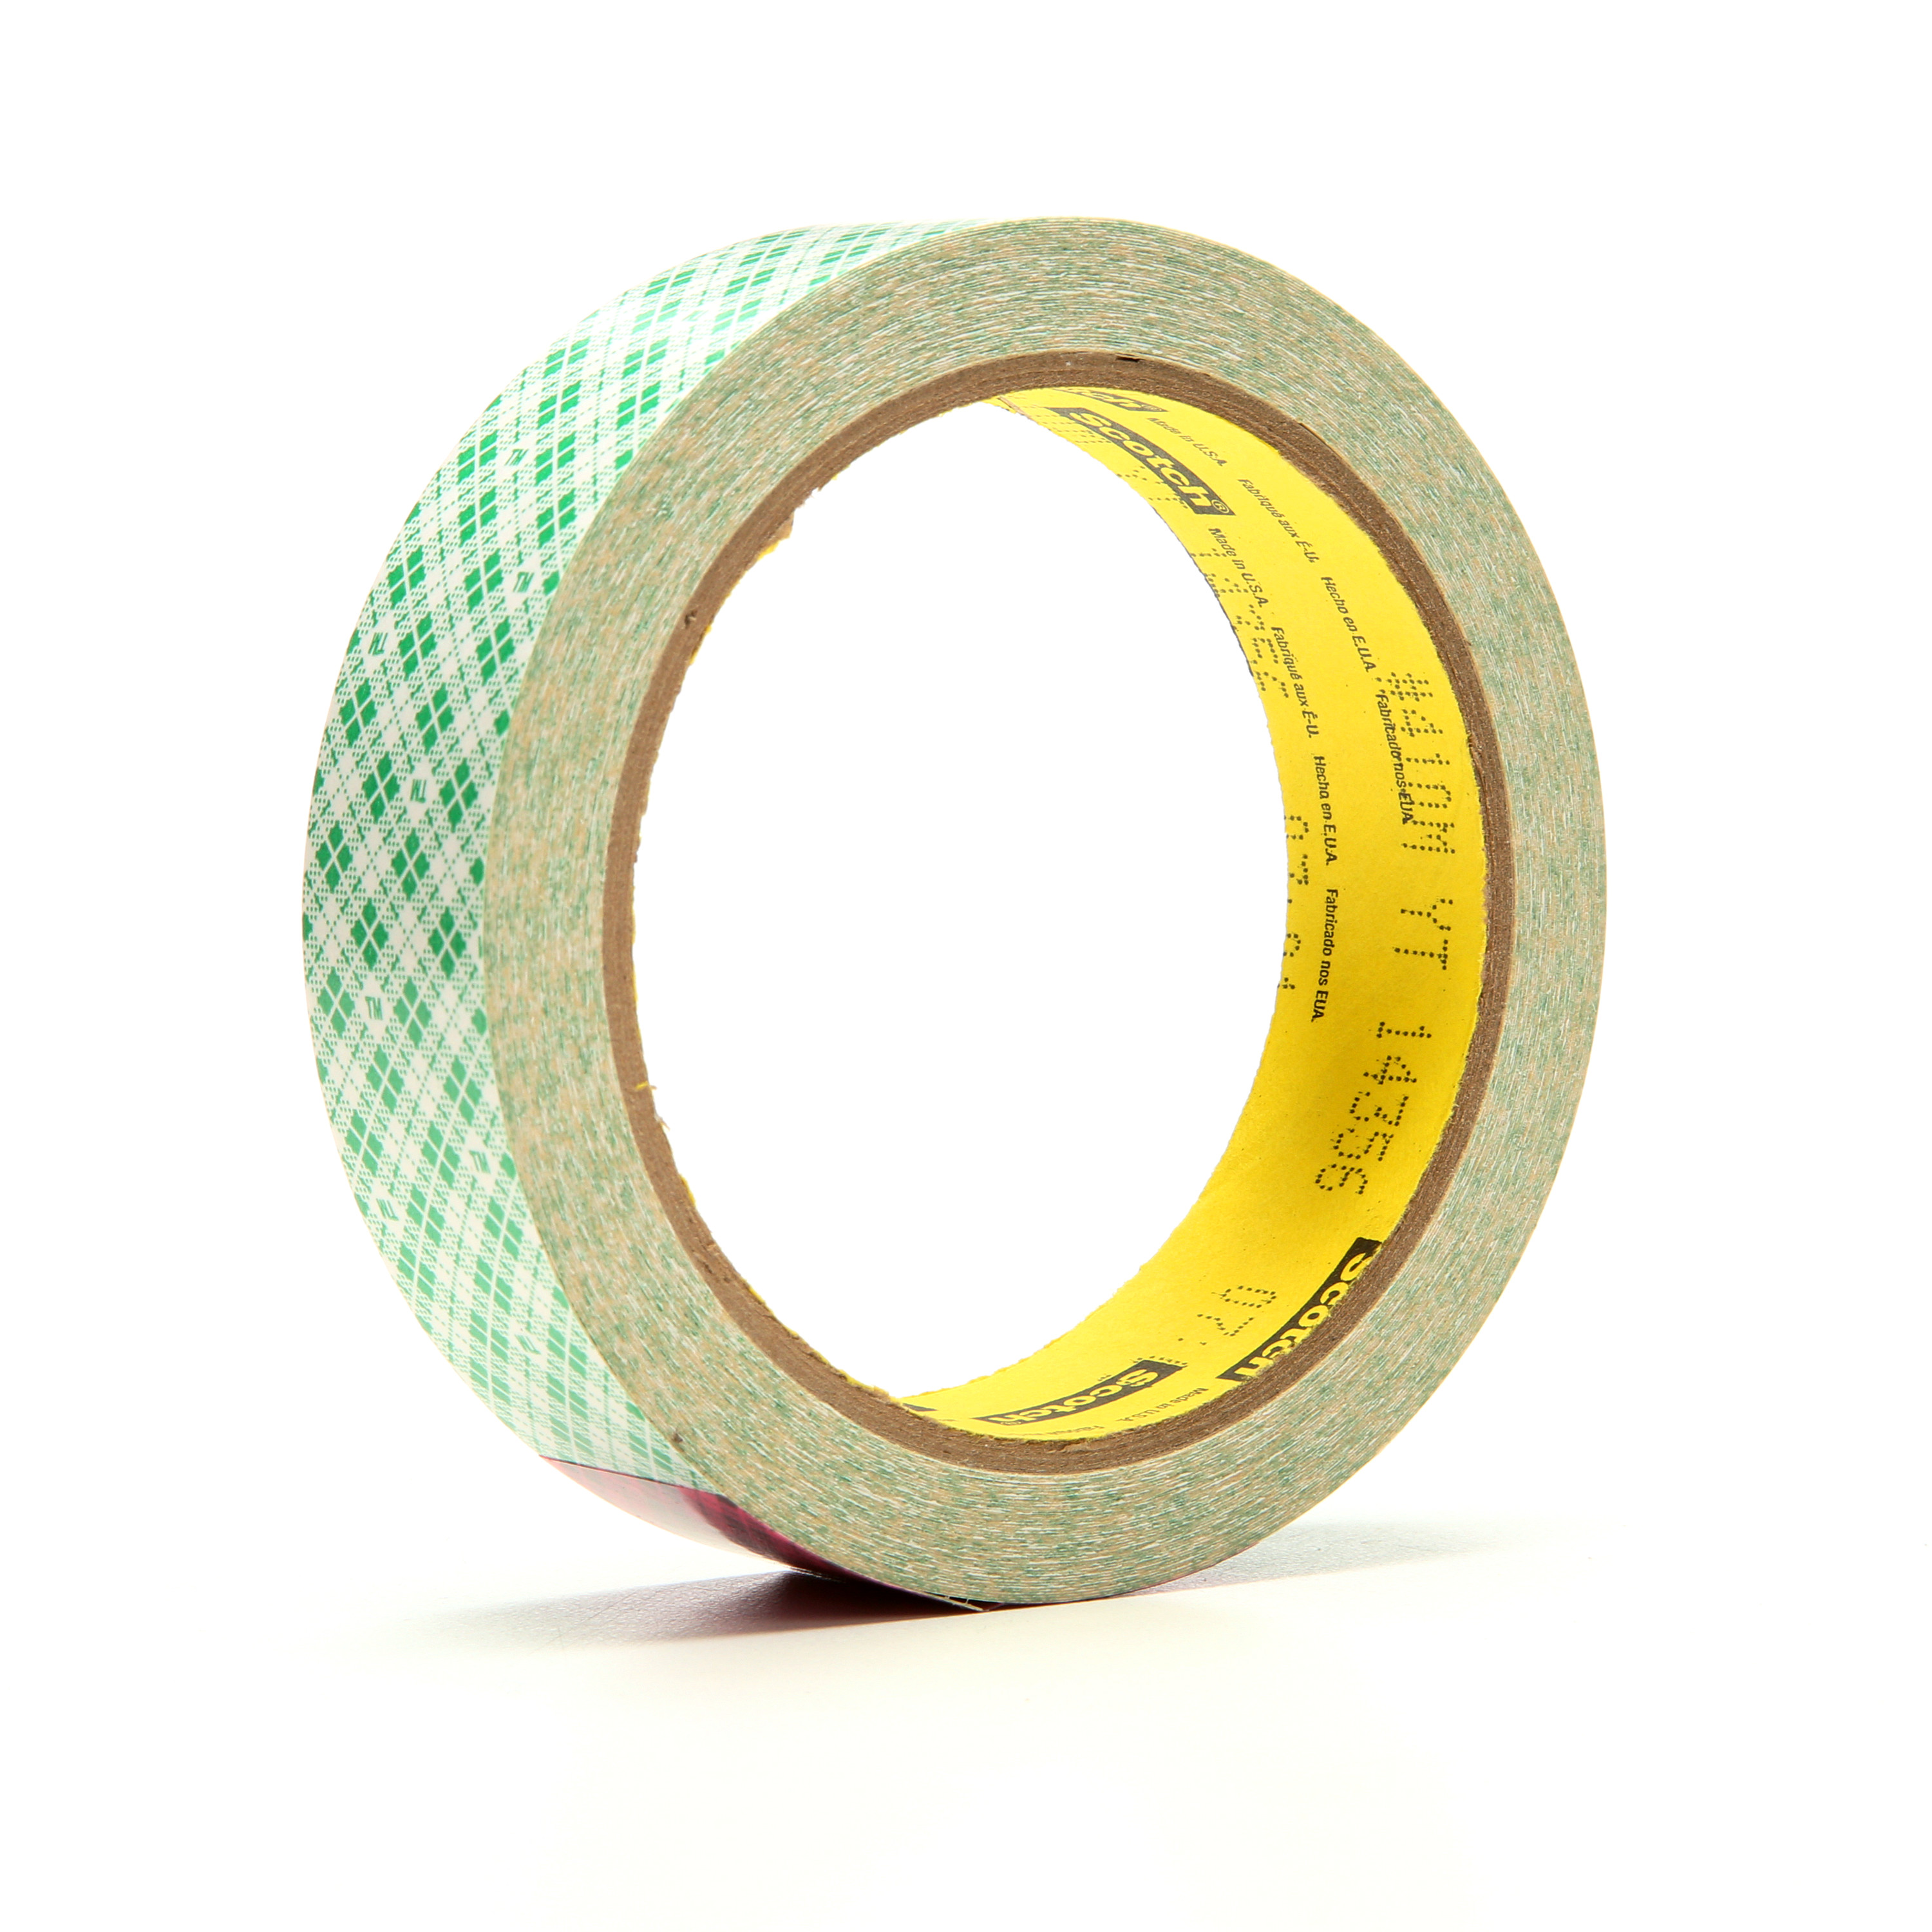 3M™ Double Coated Paper Tape 410M, Natural, 1 in x 10 yd, 5 mil, 36 rolls per case